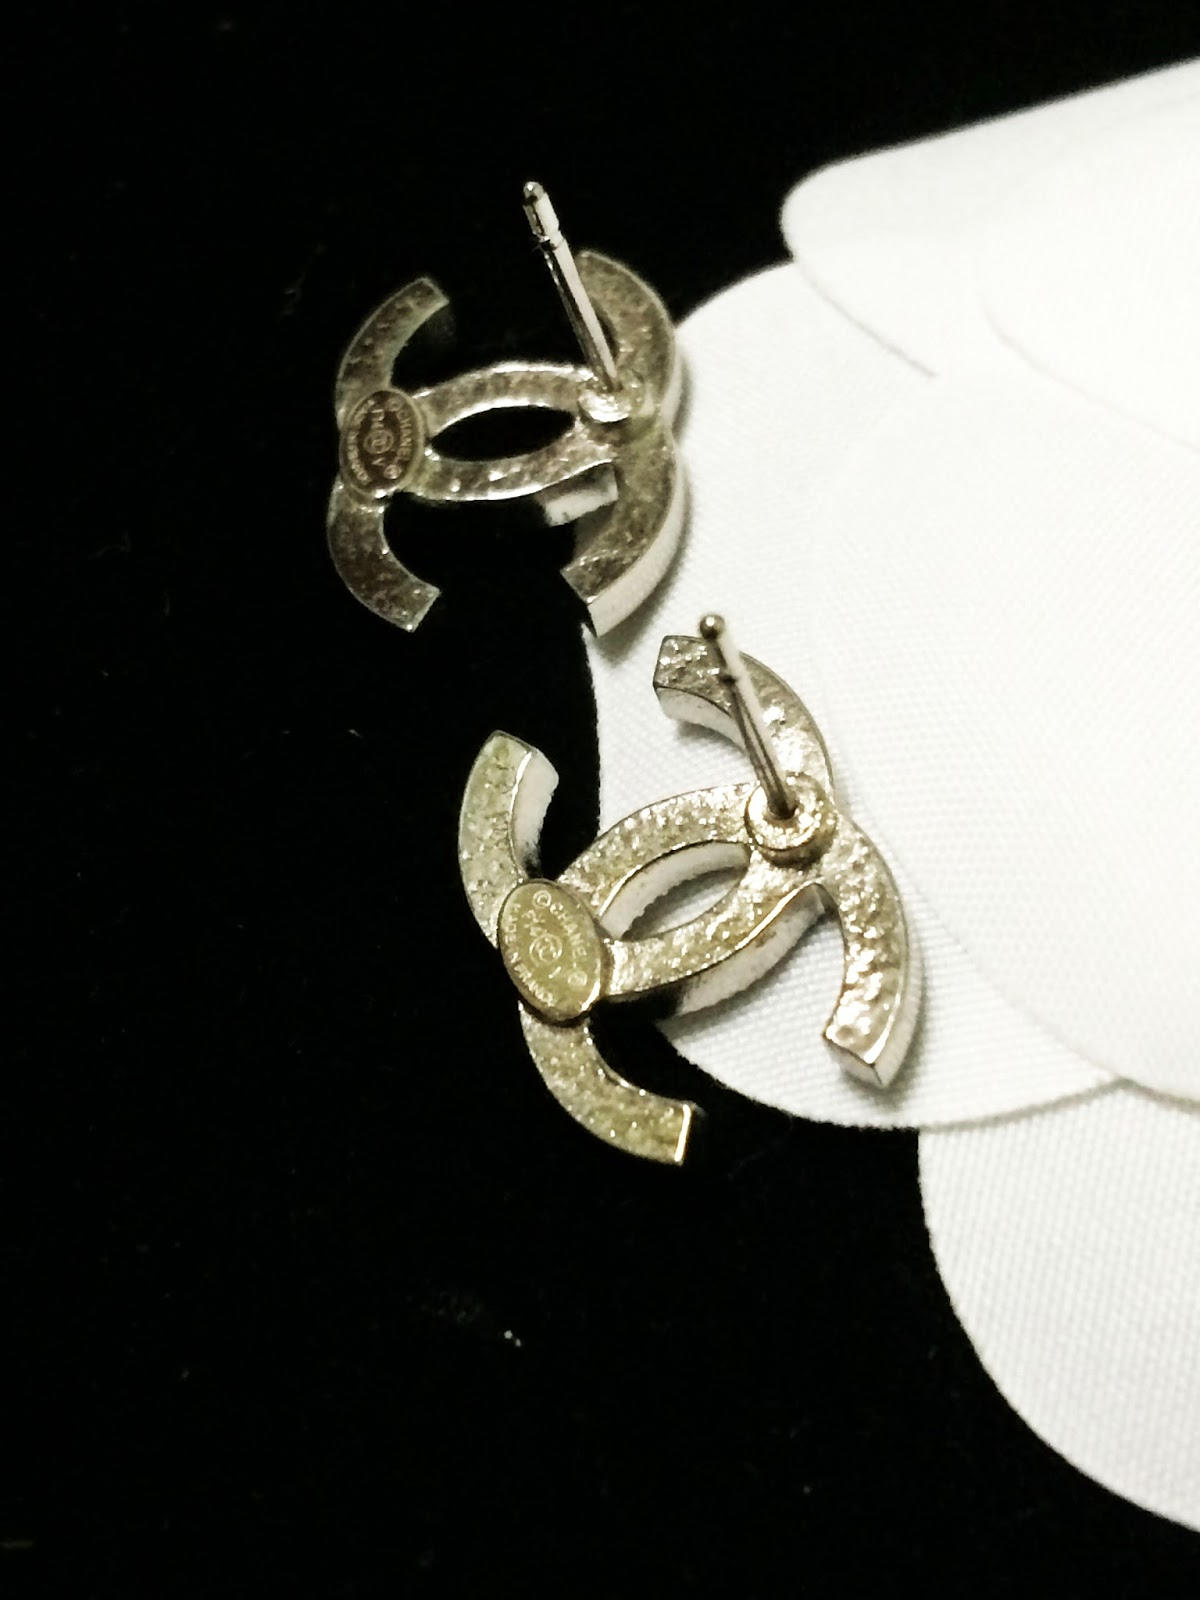 Chanel Earring Review: AUTHENTIC CHANEL EARRINGS CLASSIC ...